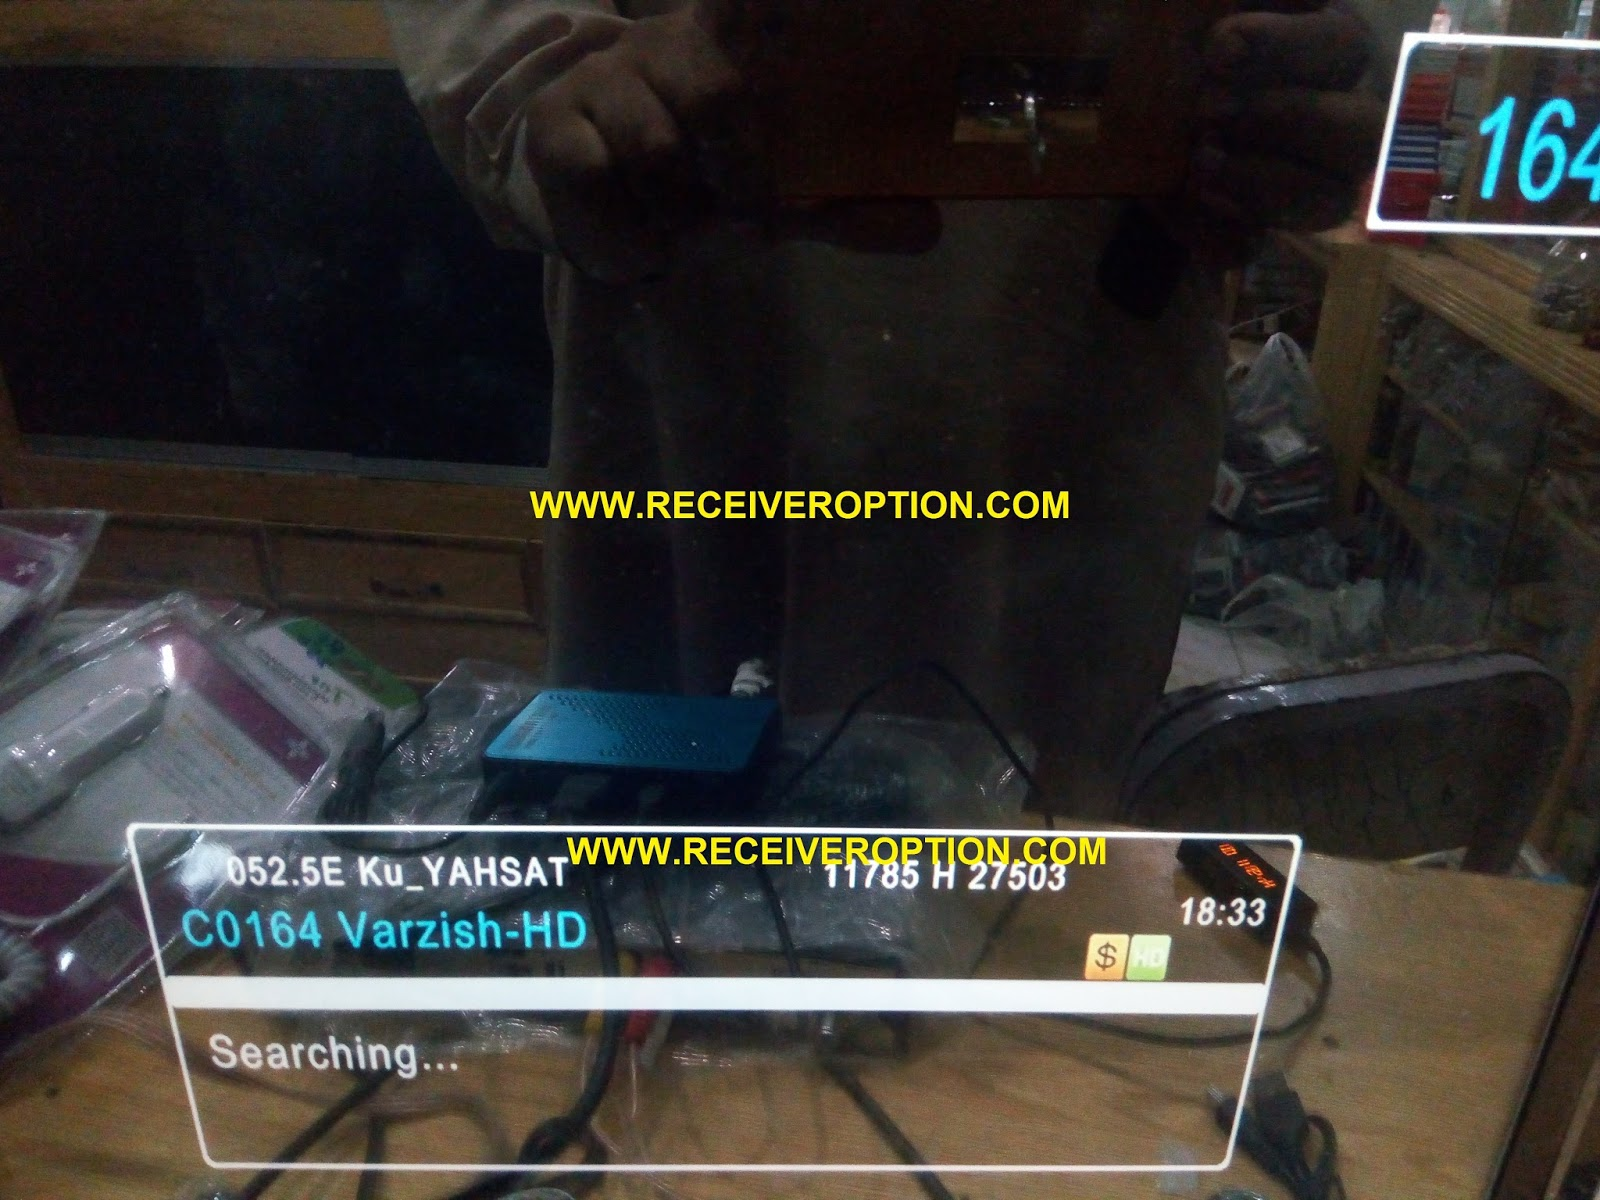 STARGOLD SG-610 HD MINI RECEIVER BISS KEY OPTION - HOW TO ENTER BISS